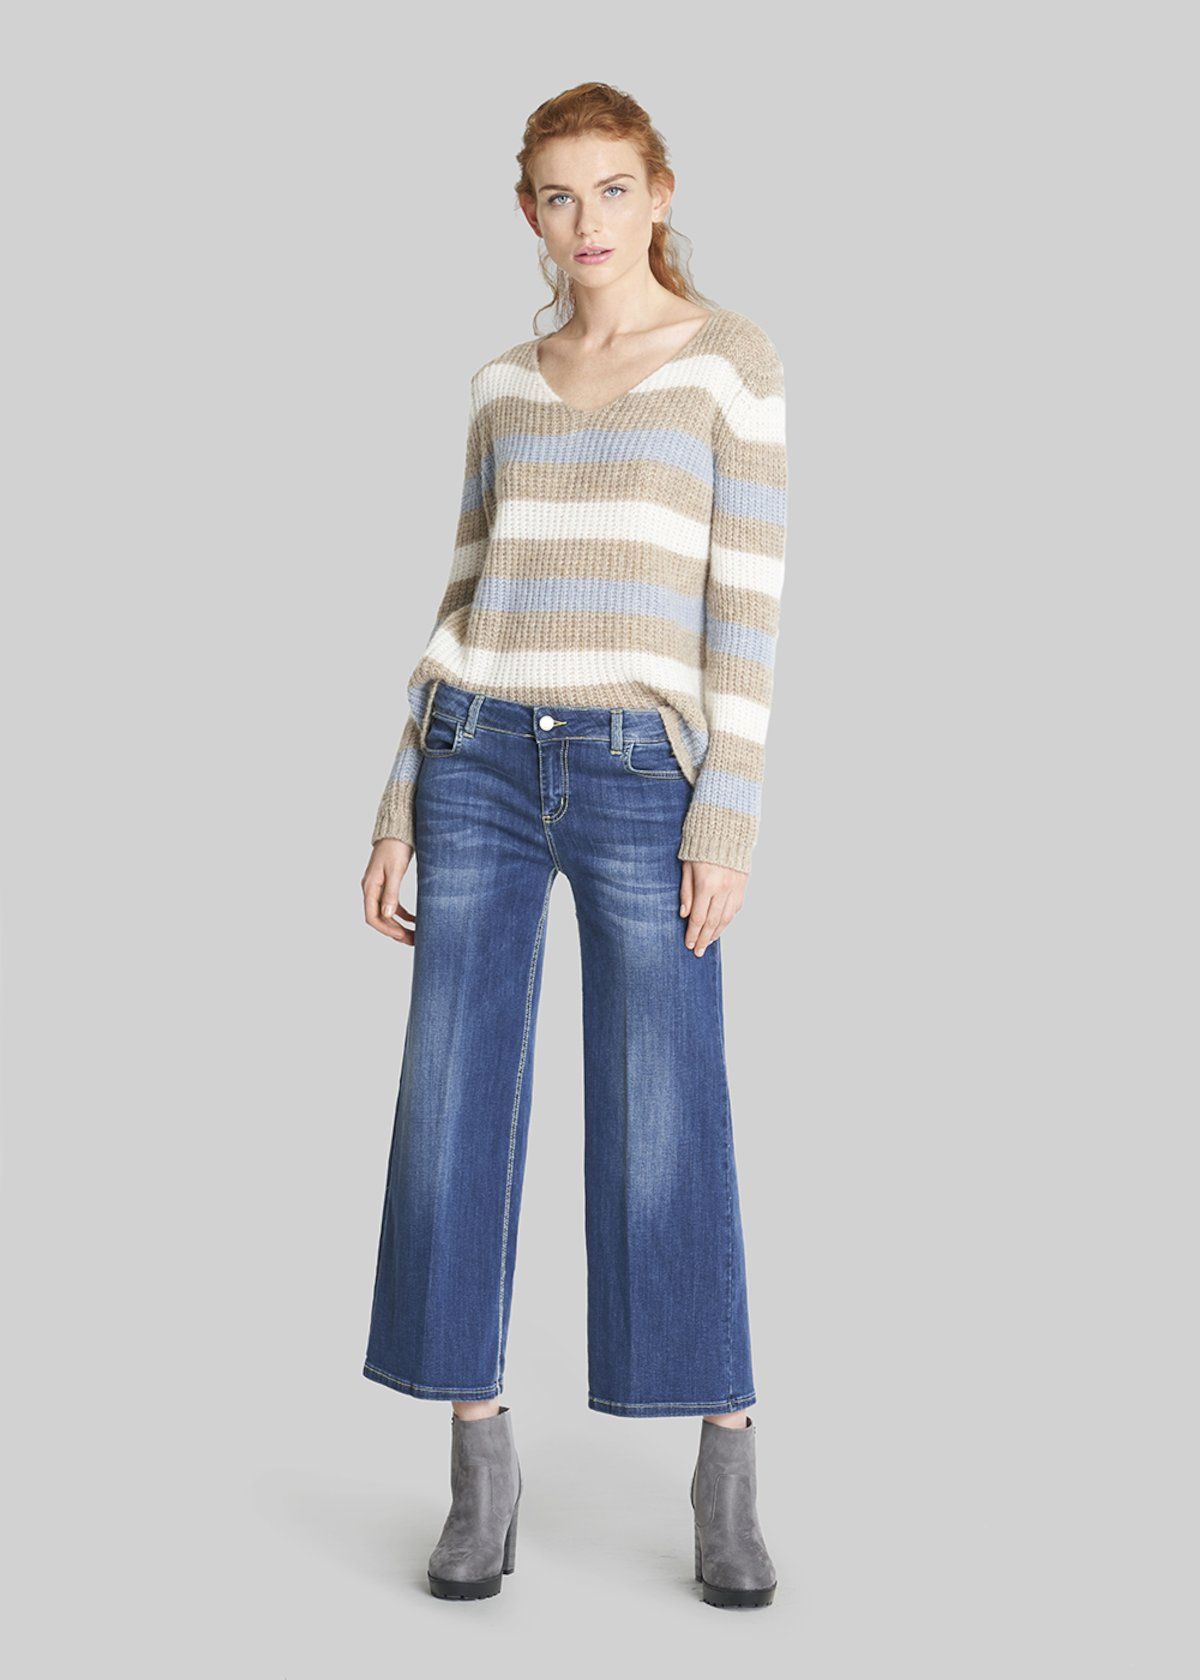 Martina sweater with multi-stripes print - Fog / Nomad Stripes - Woman - Category image